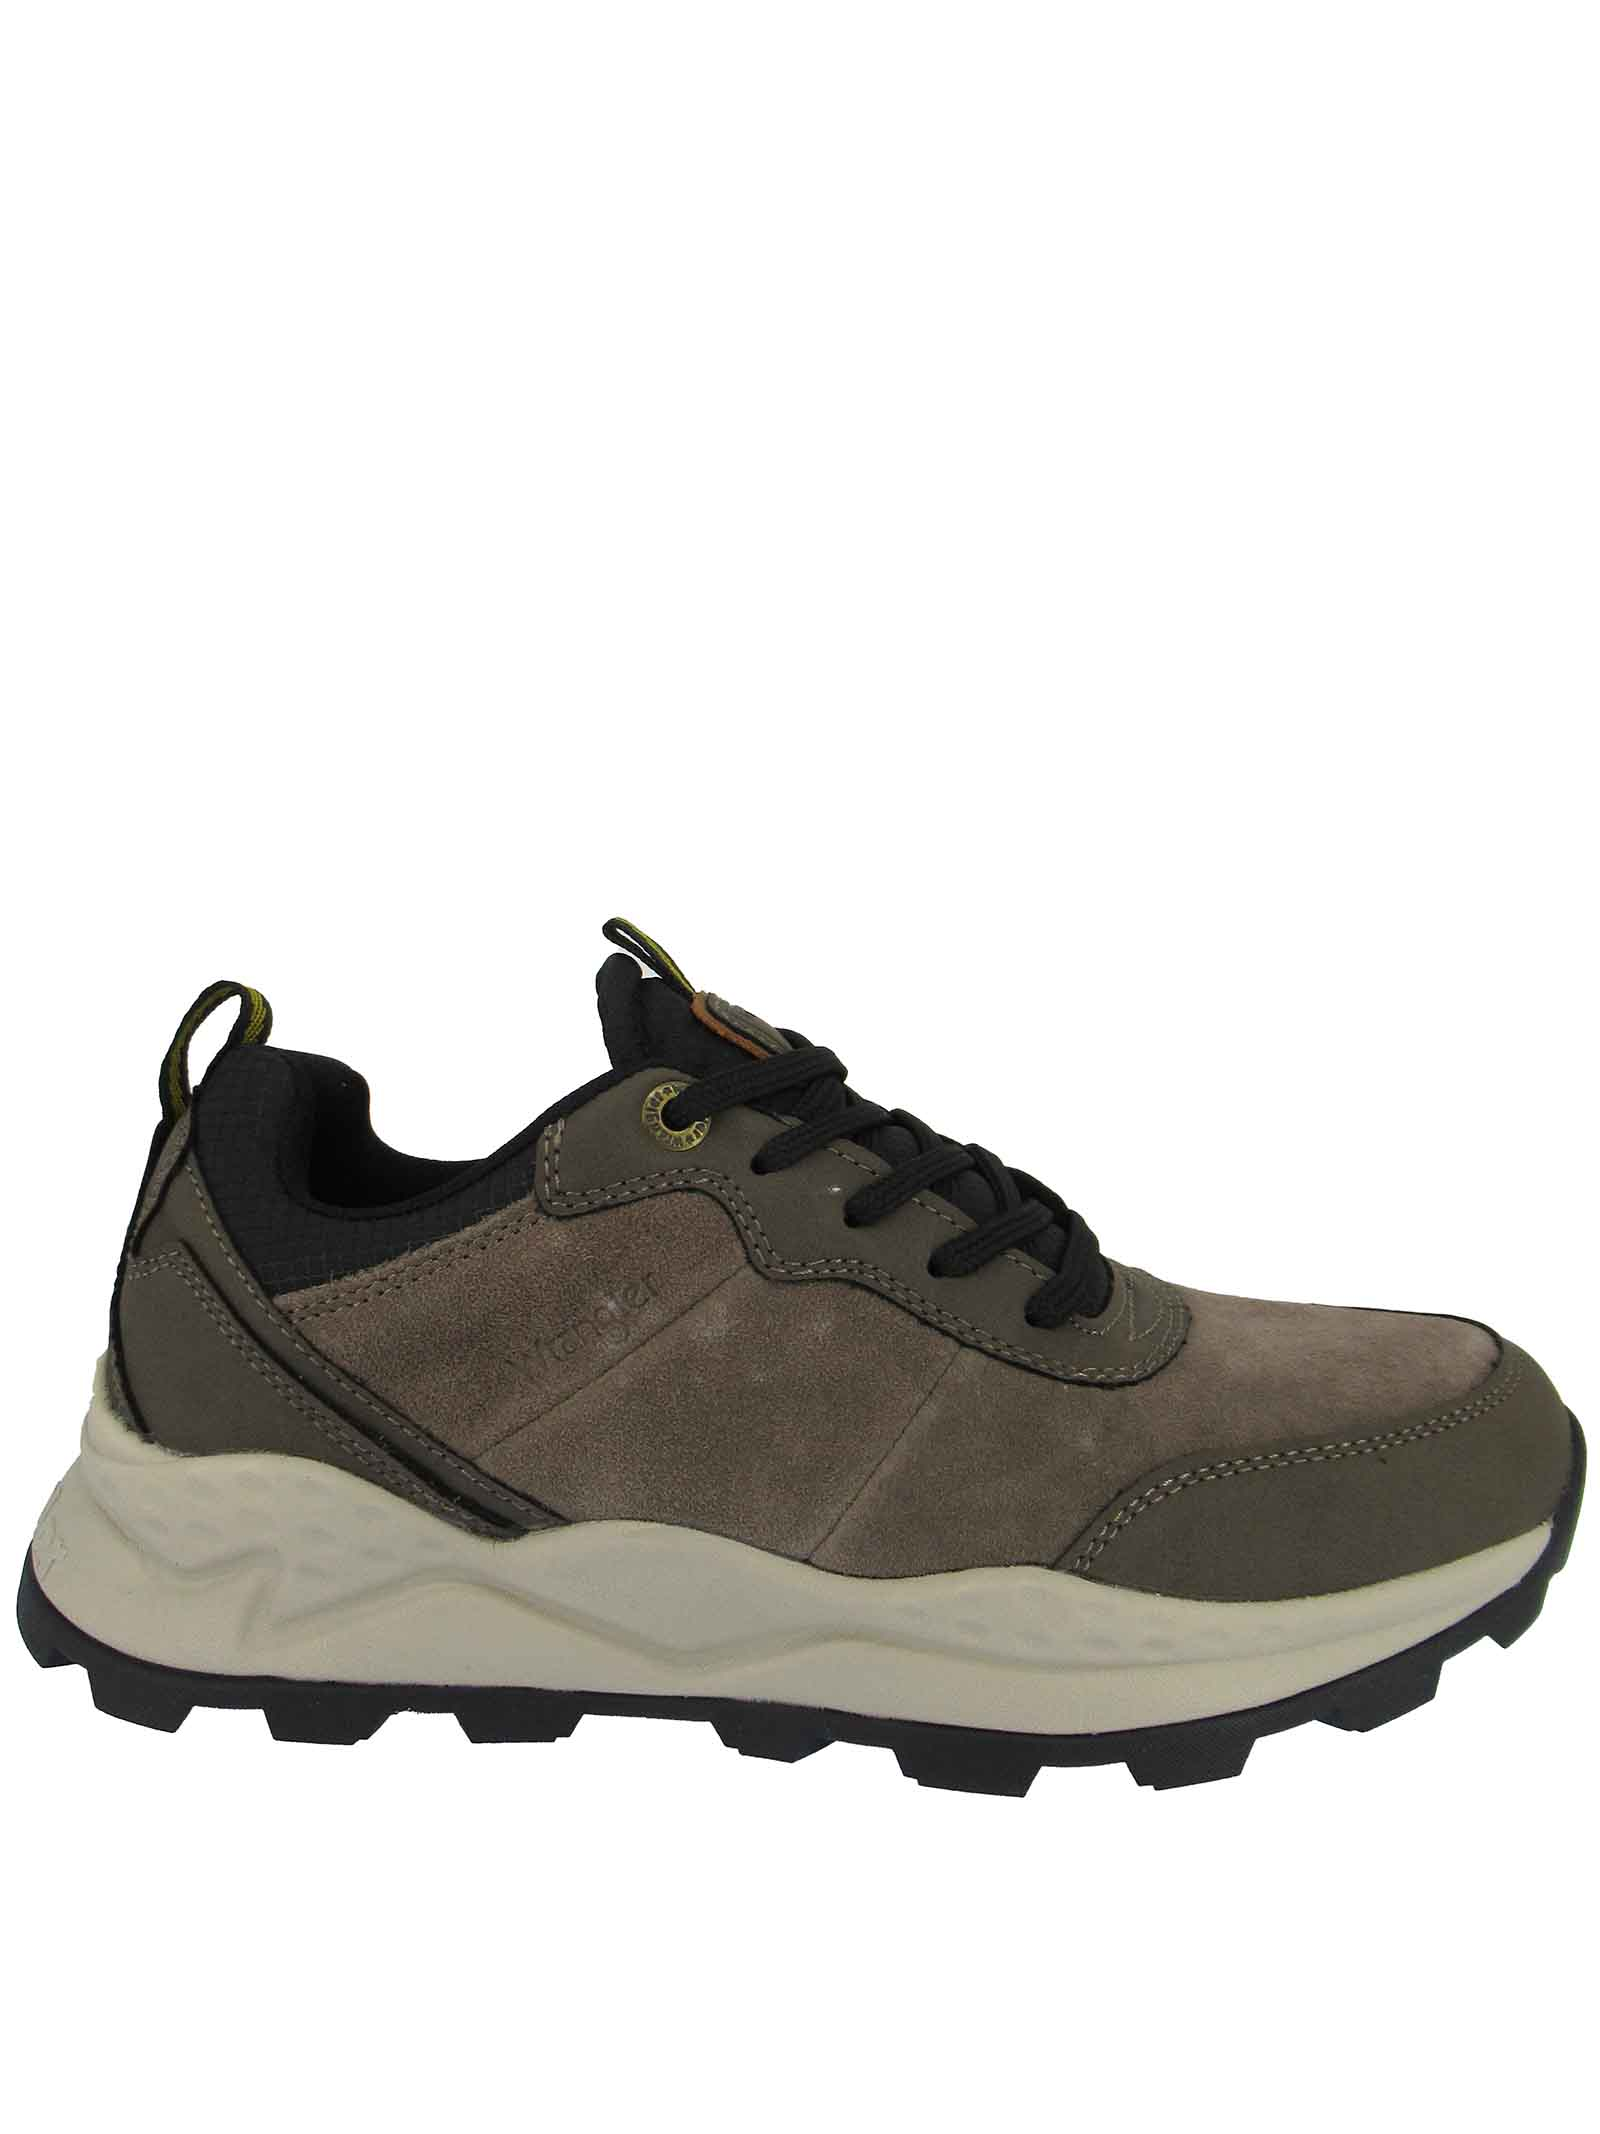 Men's Shoes Lace-up Boots Crossy Mid in Taupe Leather and Suede with Trekking Sole Wrangler | Lace up shoes | WM12104A029